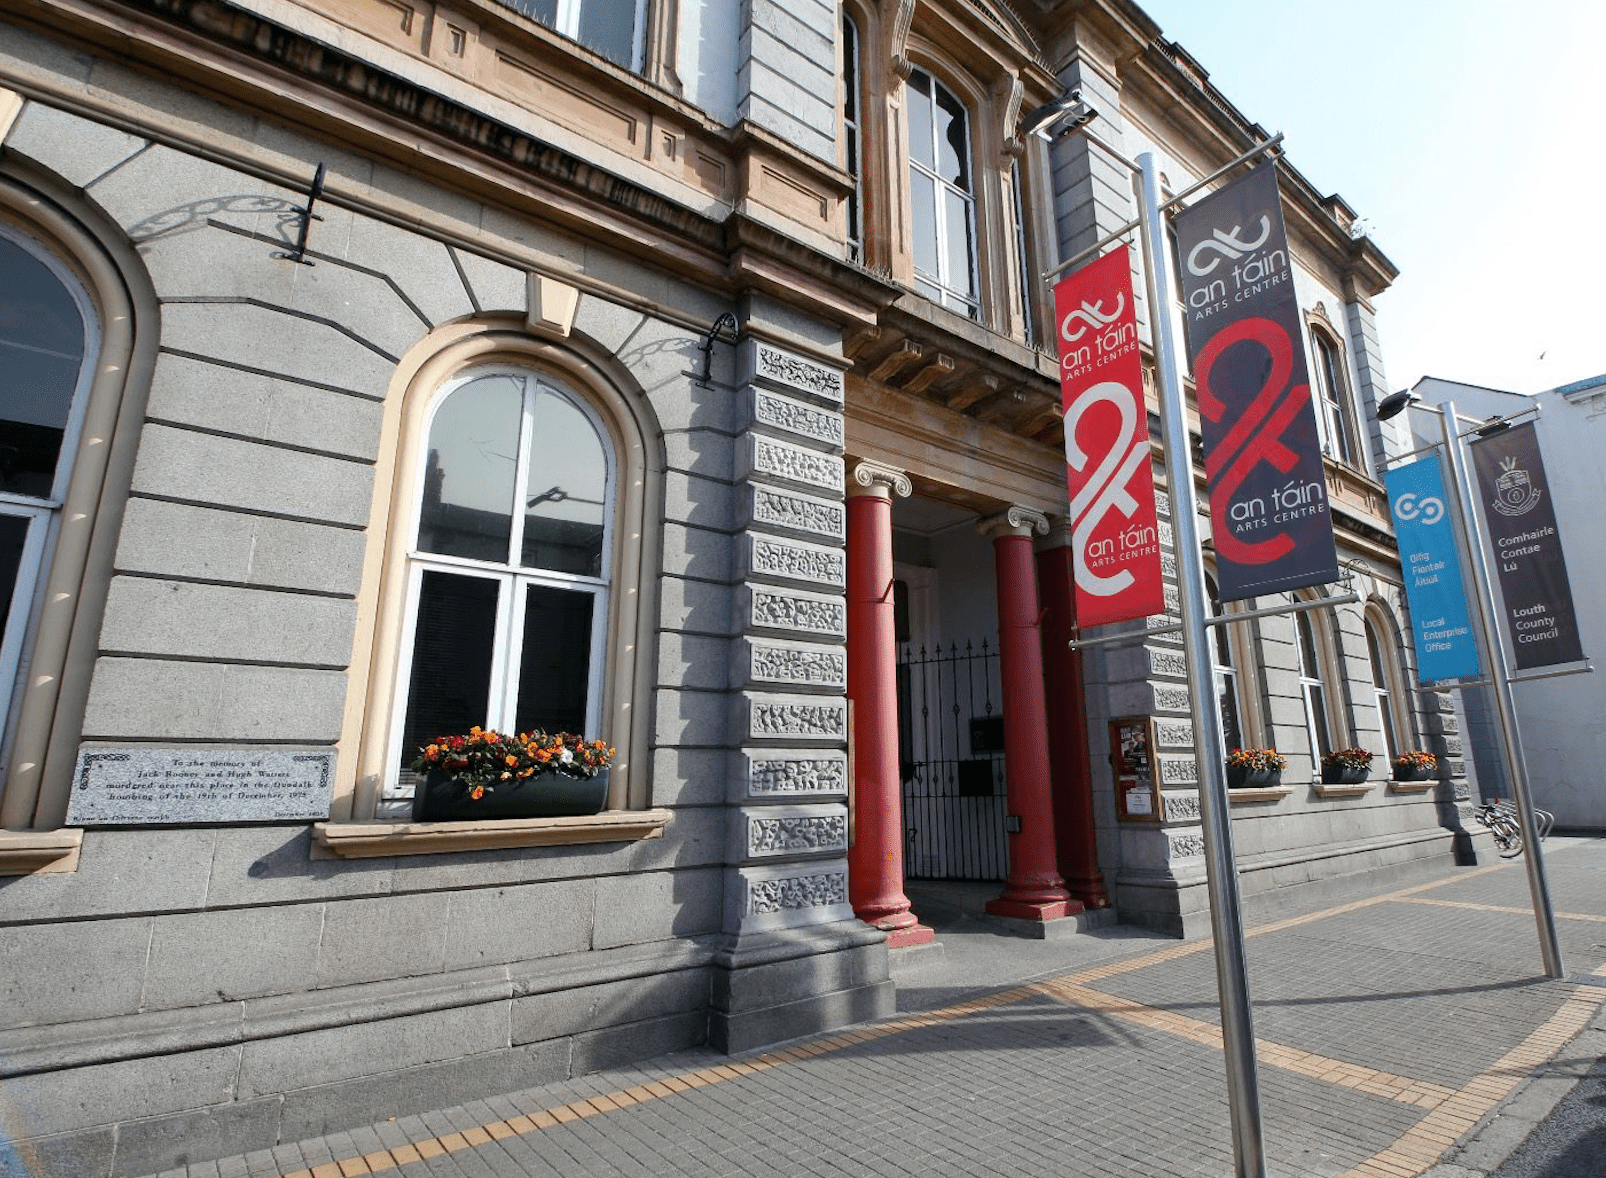 Outside of the An Táin Arts Centre building with street post banner signs advertising the center